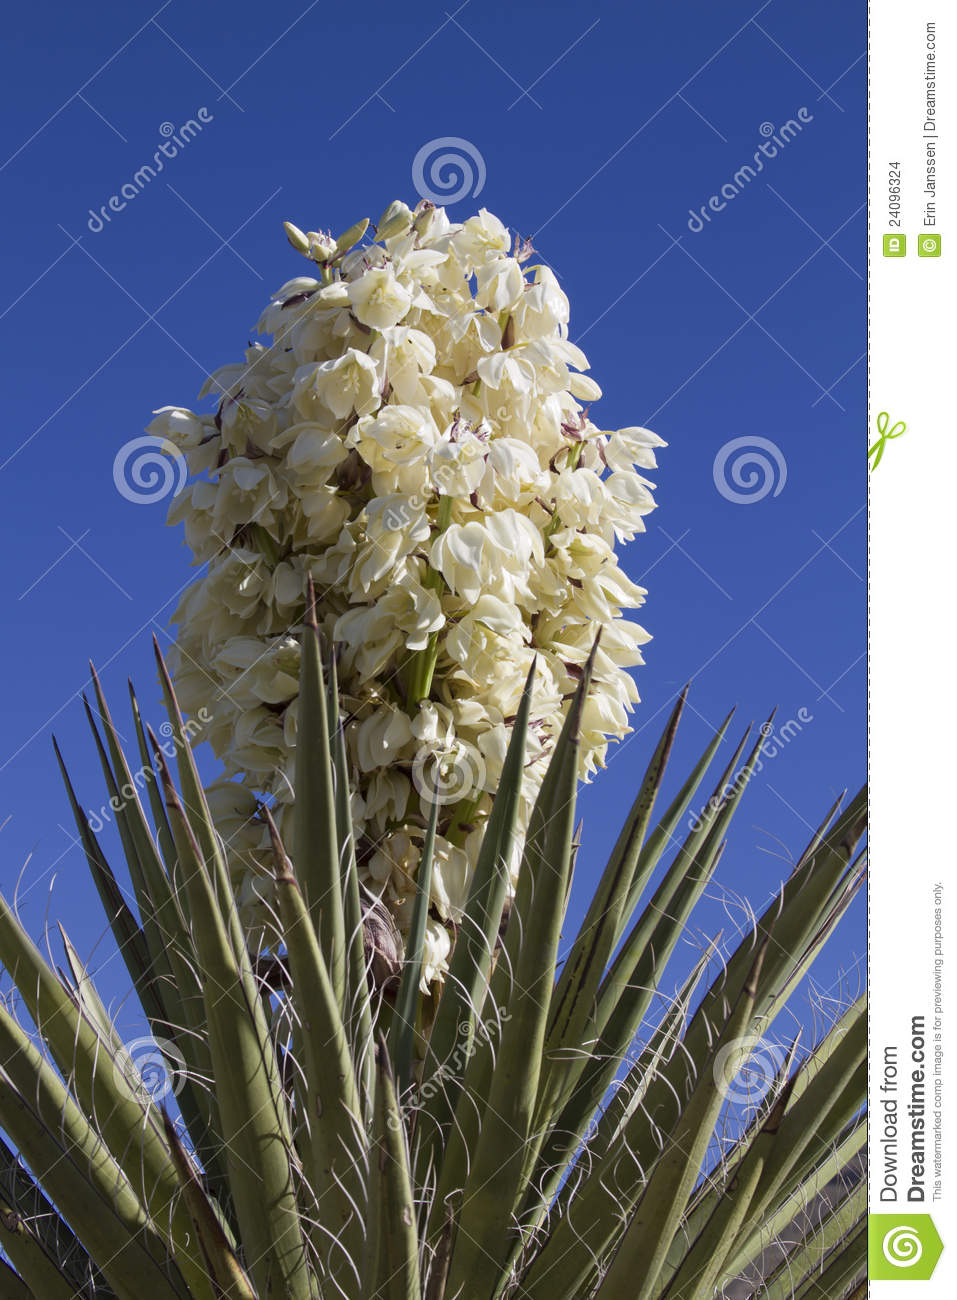 Yucca Plant In Bloom Stock Photo Image Of Desert Outdoors 24096324